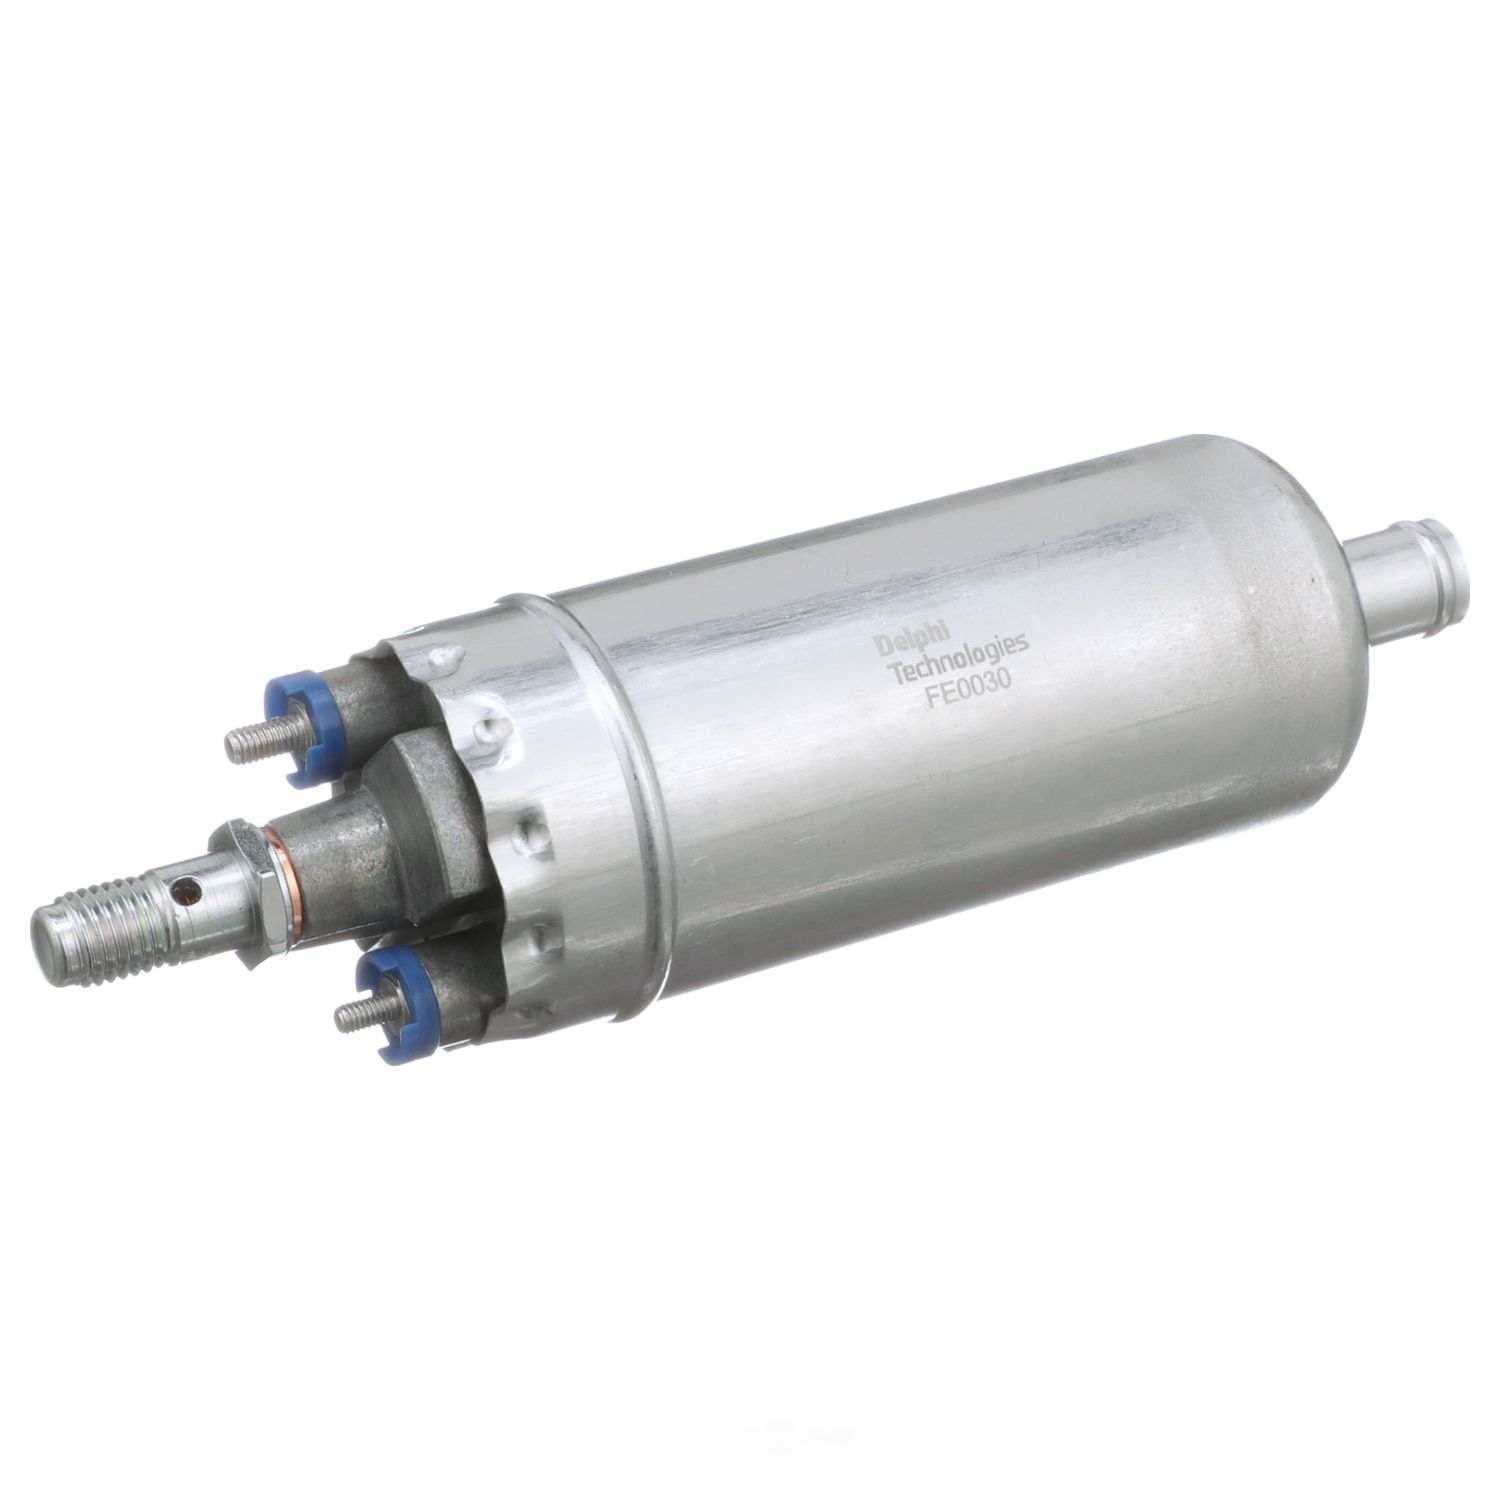 DELPHI - Electric Fuel Pump (In-Line) - DPH FE0030